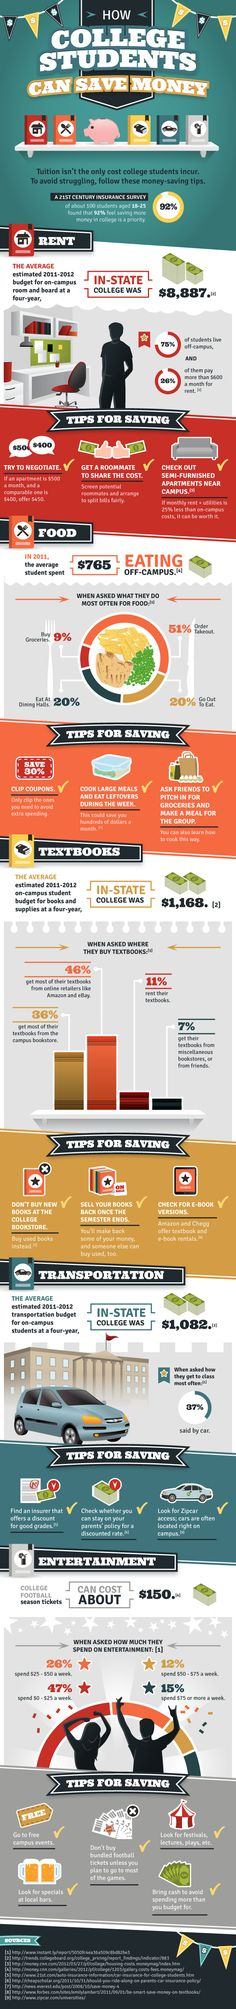 How College Students Can Save Money [INFOGRAPHIC]